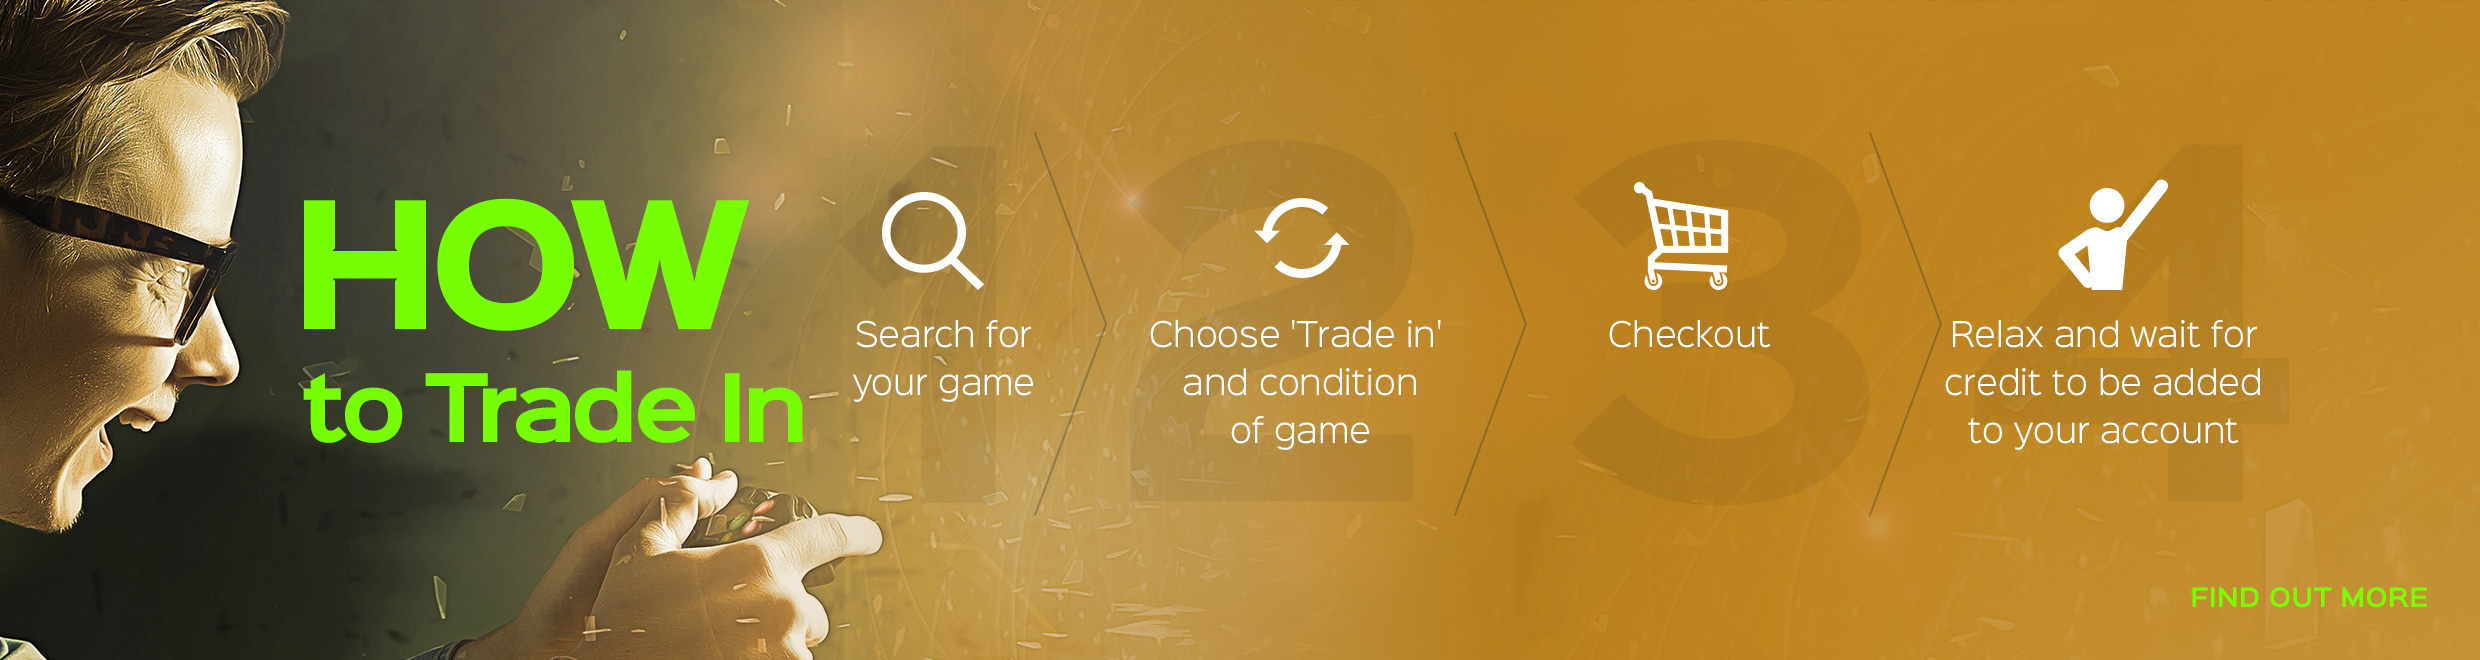 How to Trade In Your Games